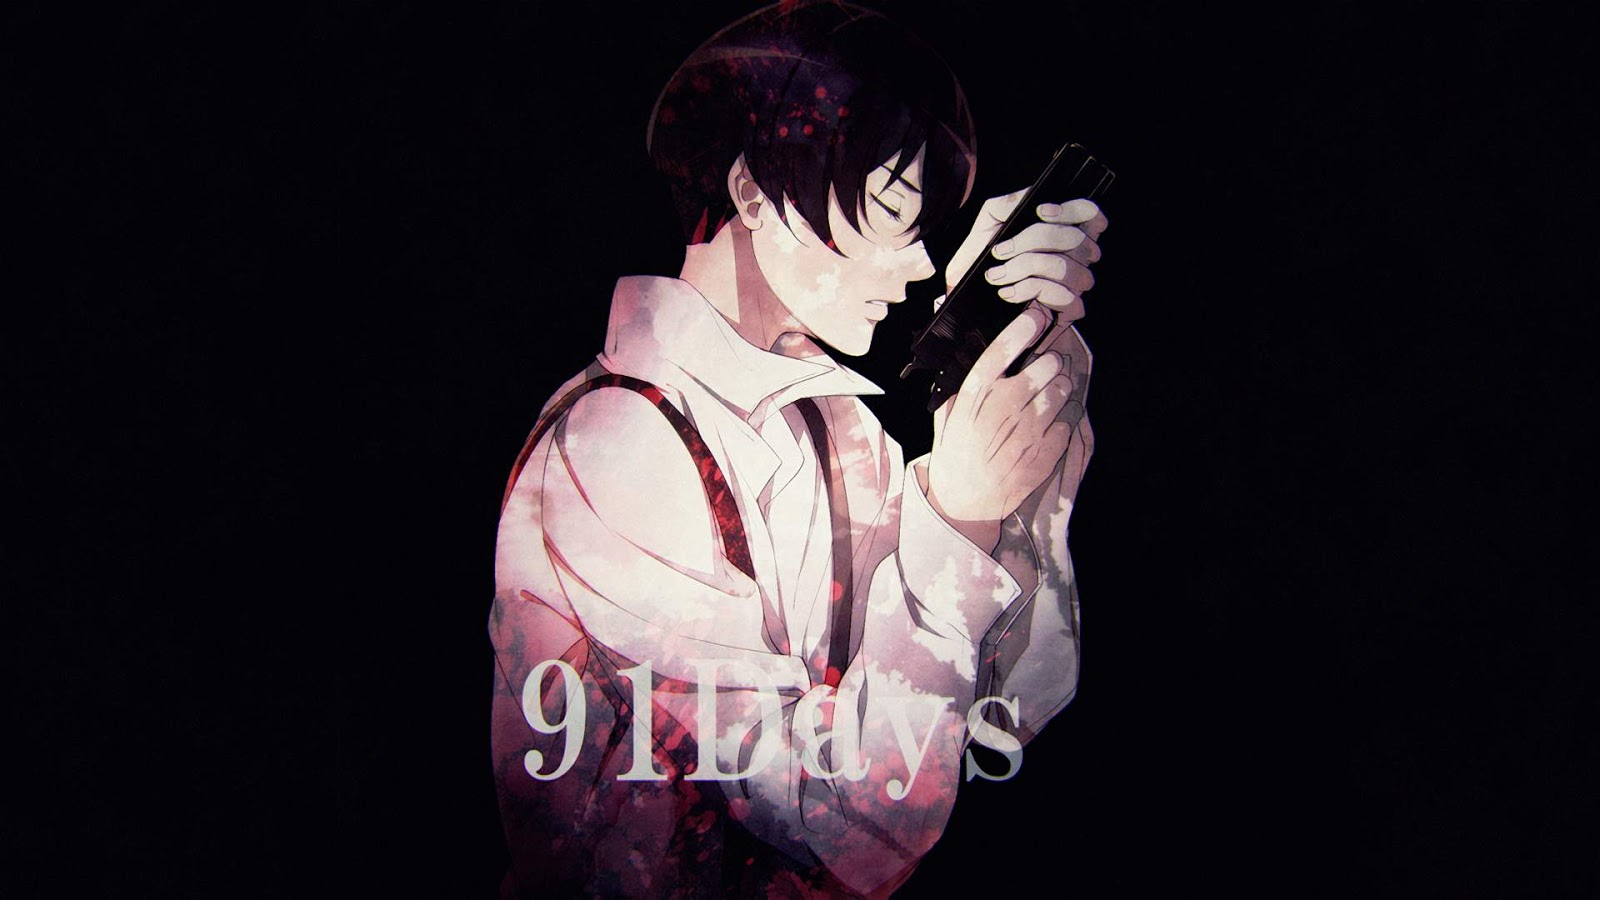 91 Days Anime Subtitle Indonesia - FileAnime